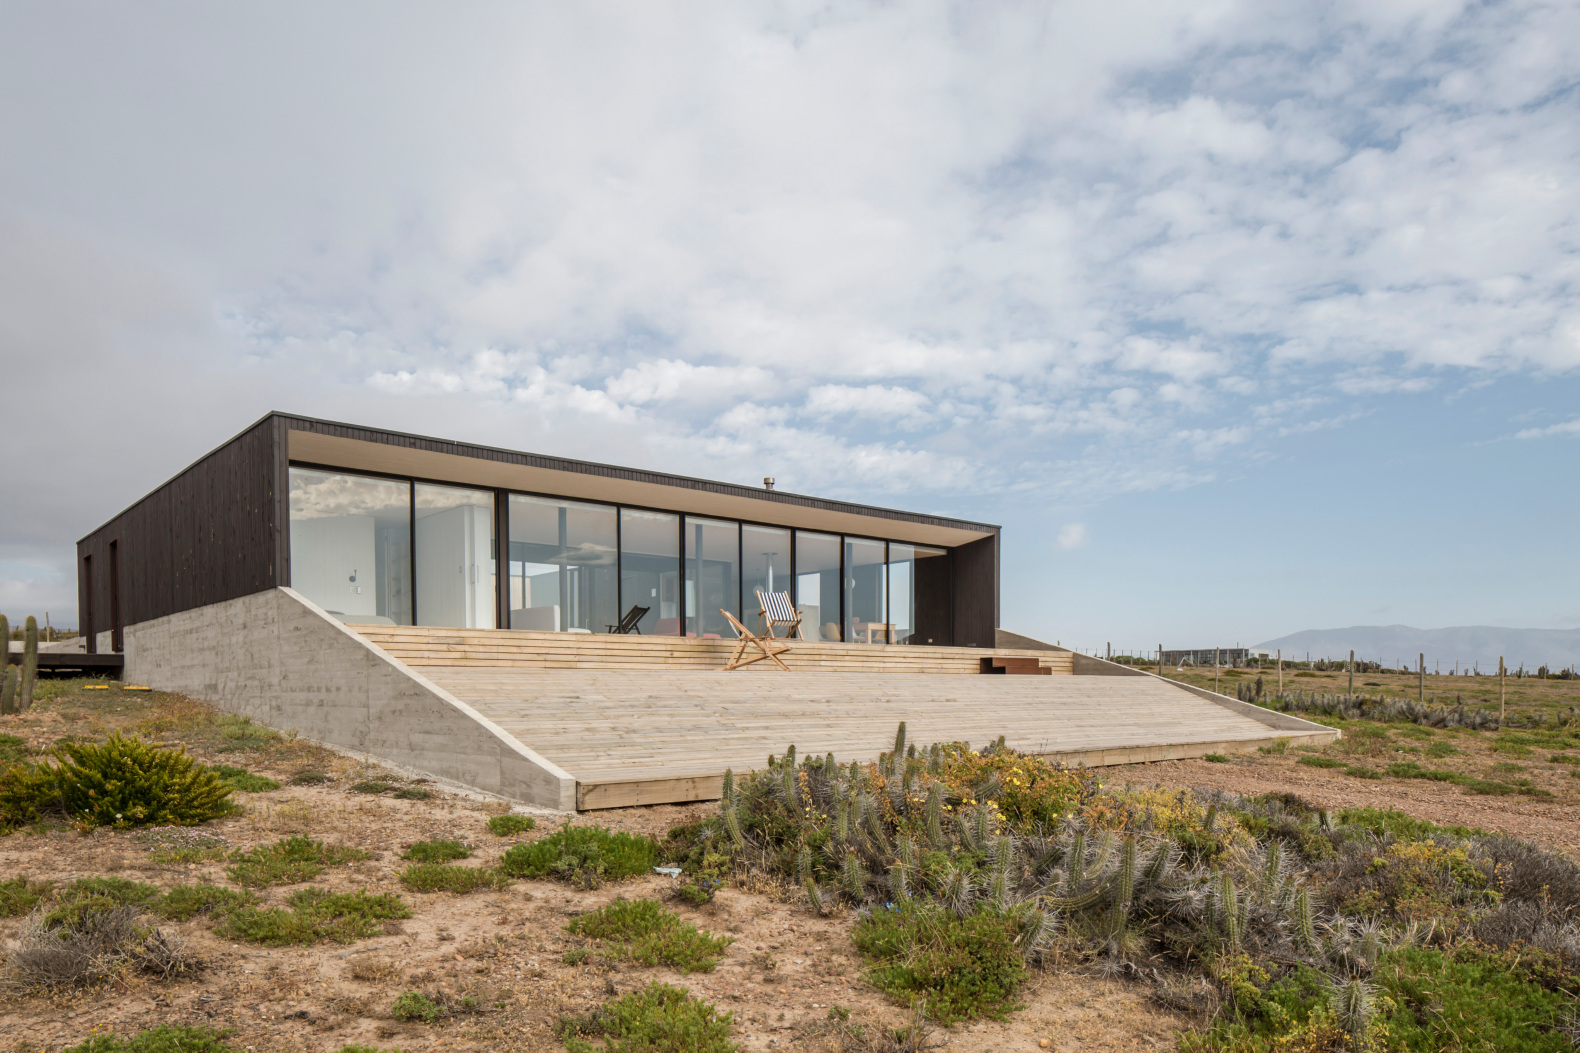 This sustainable home in Chile is designed as an 'unplugged' retreat for a family of six